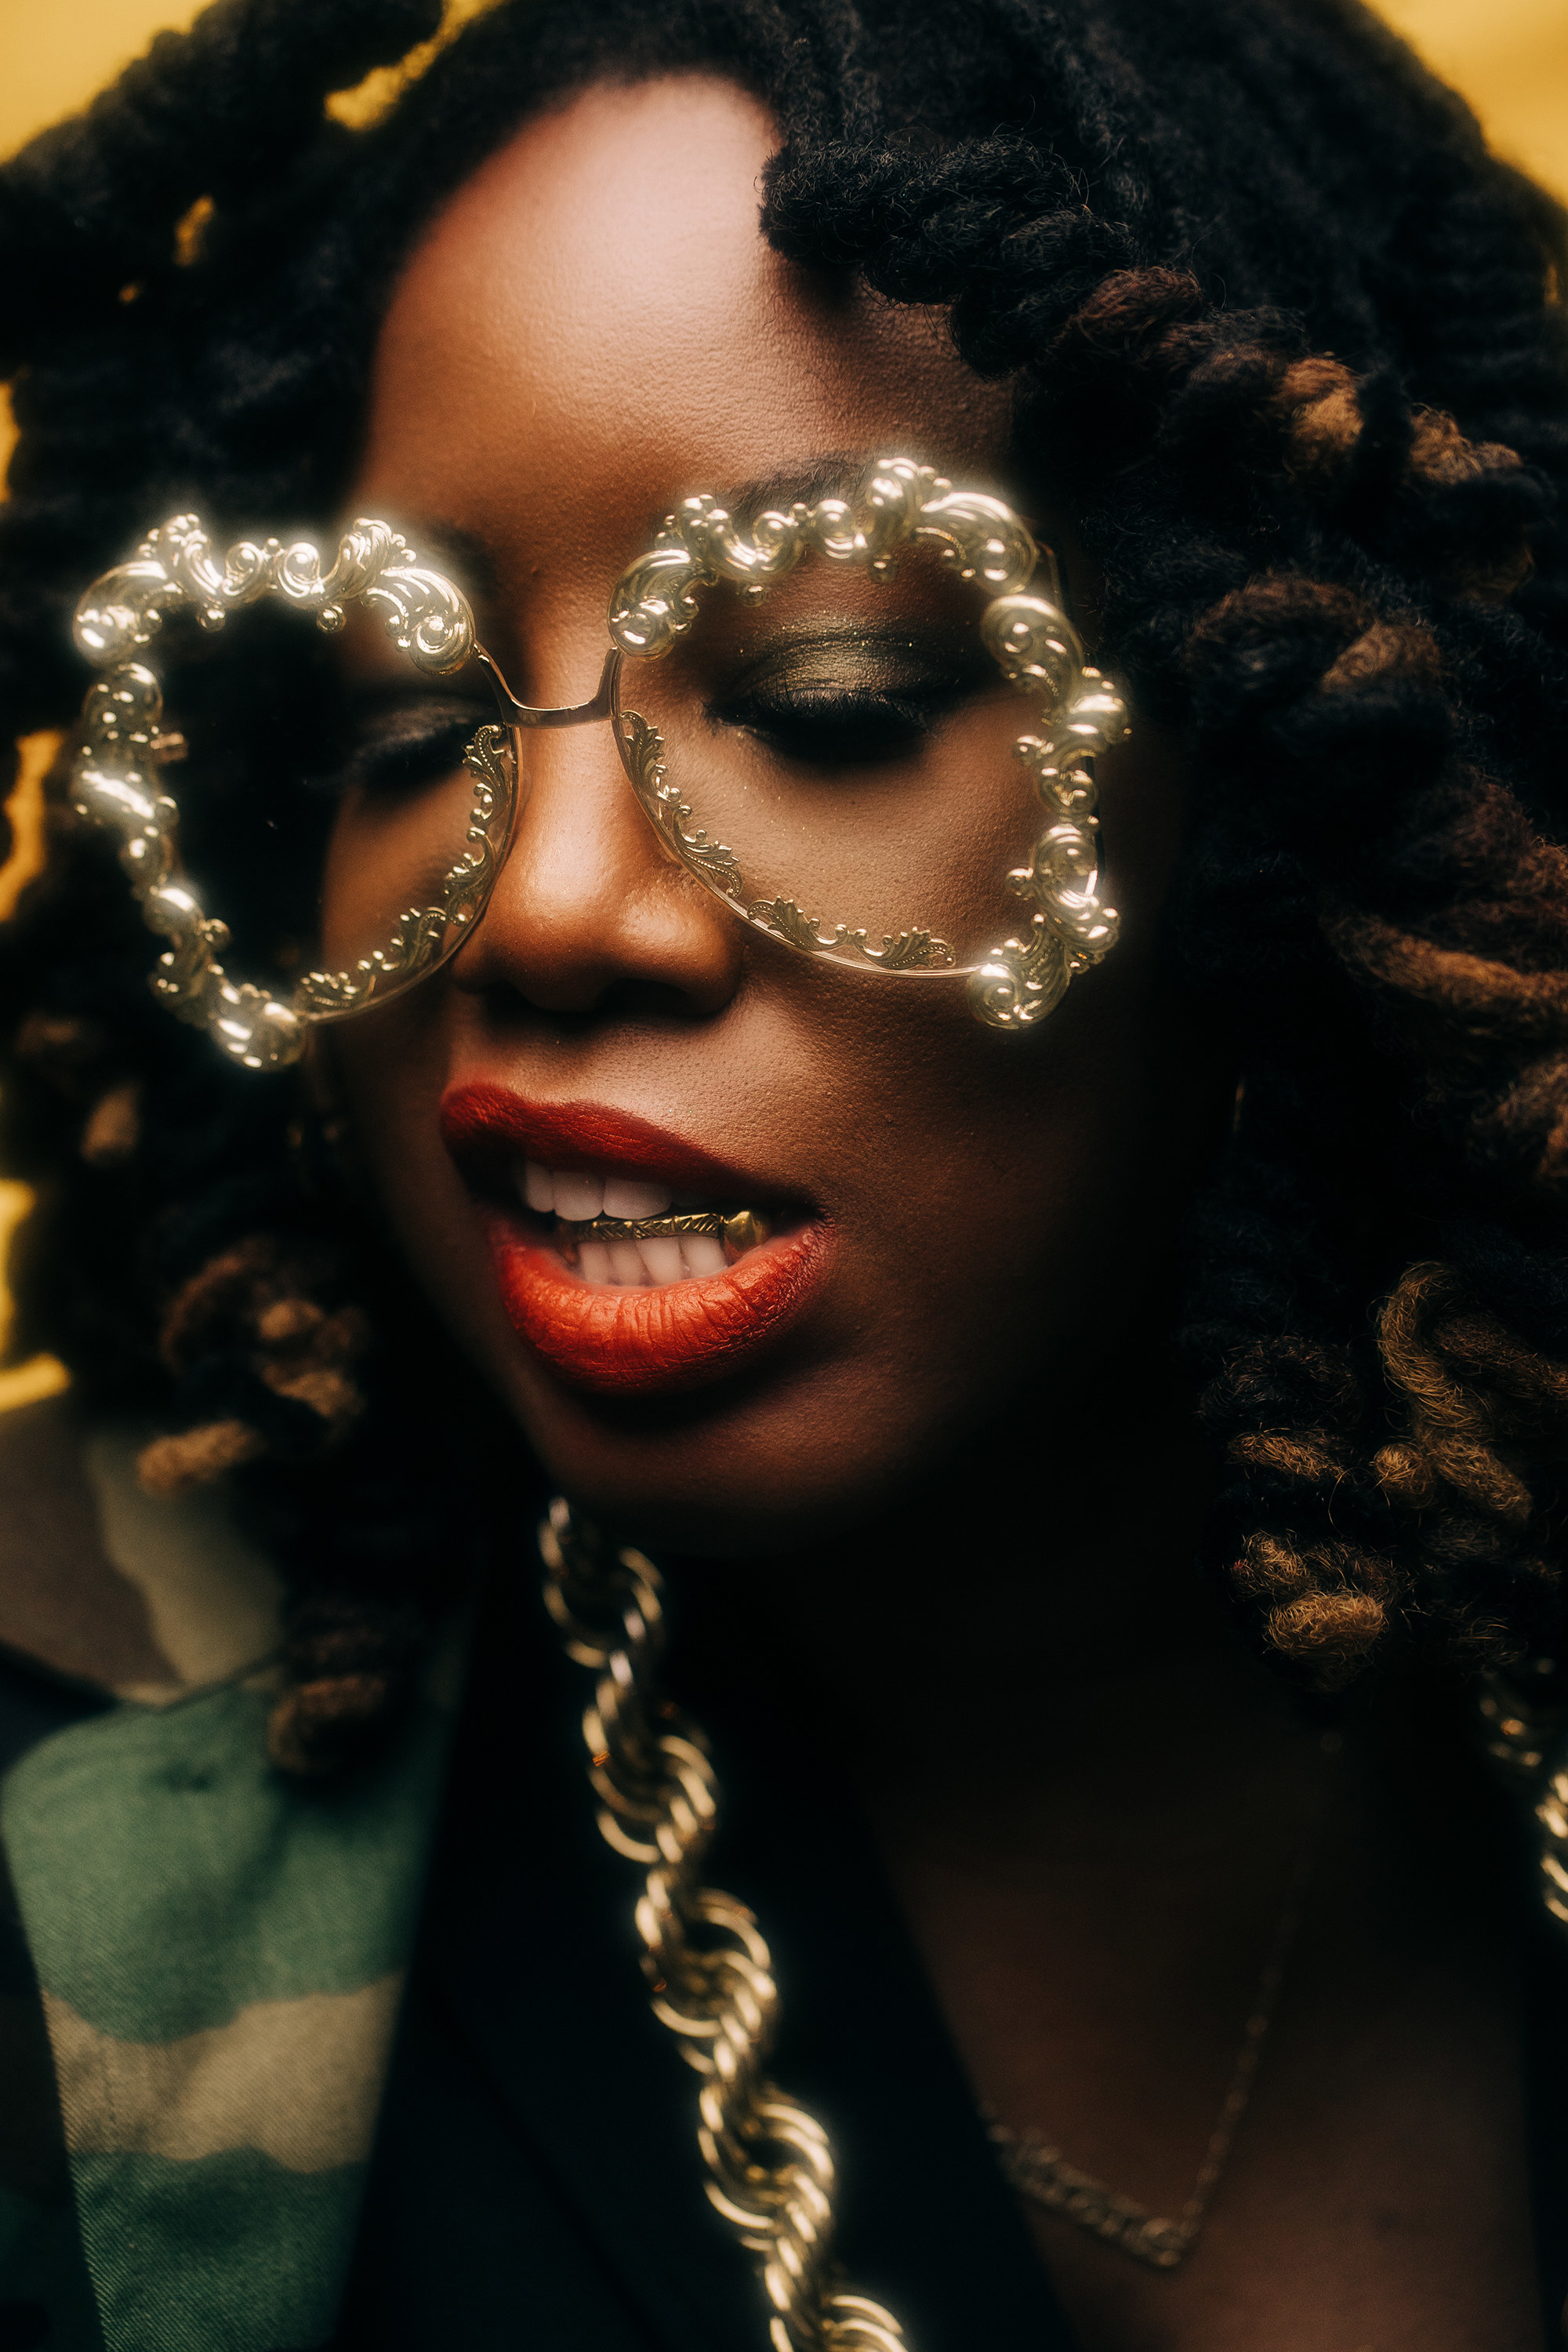 A woman with a god bar in her teeth and giant gold filigree glasses and red liptsick looks down in a portrait.